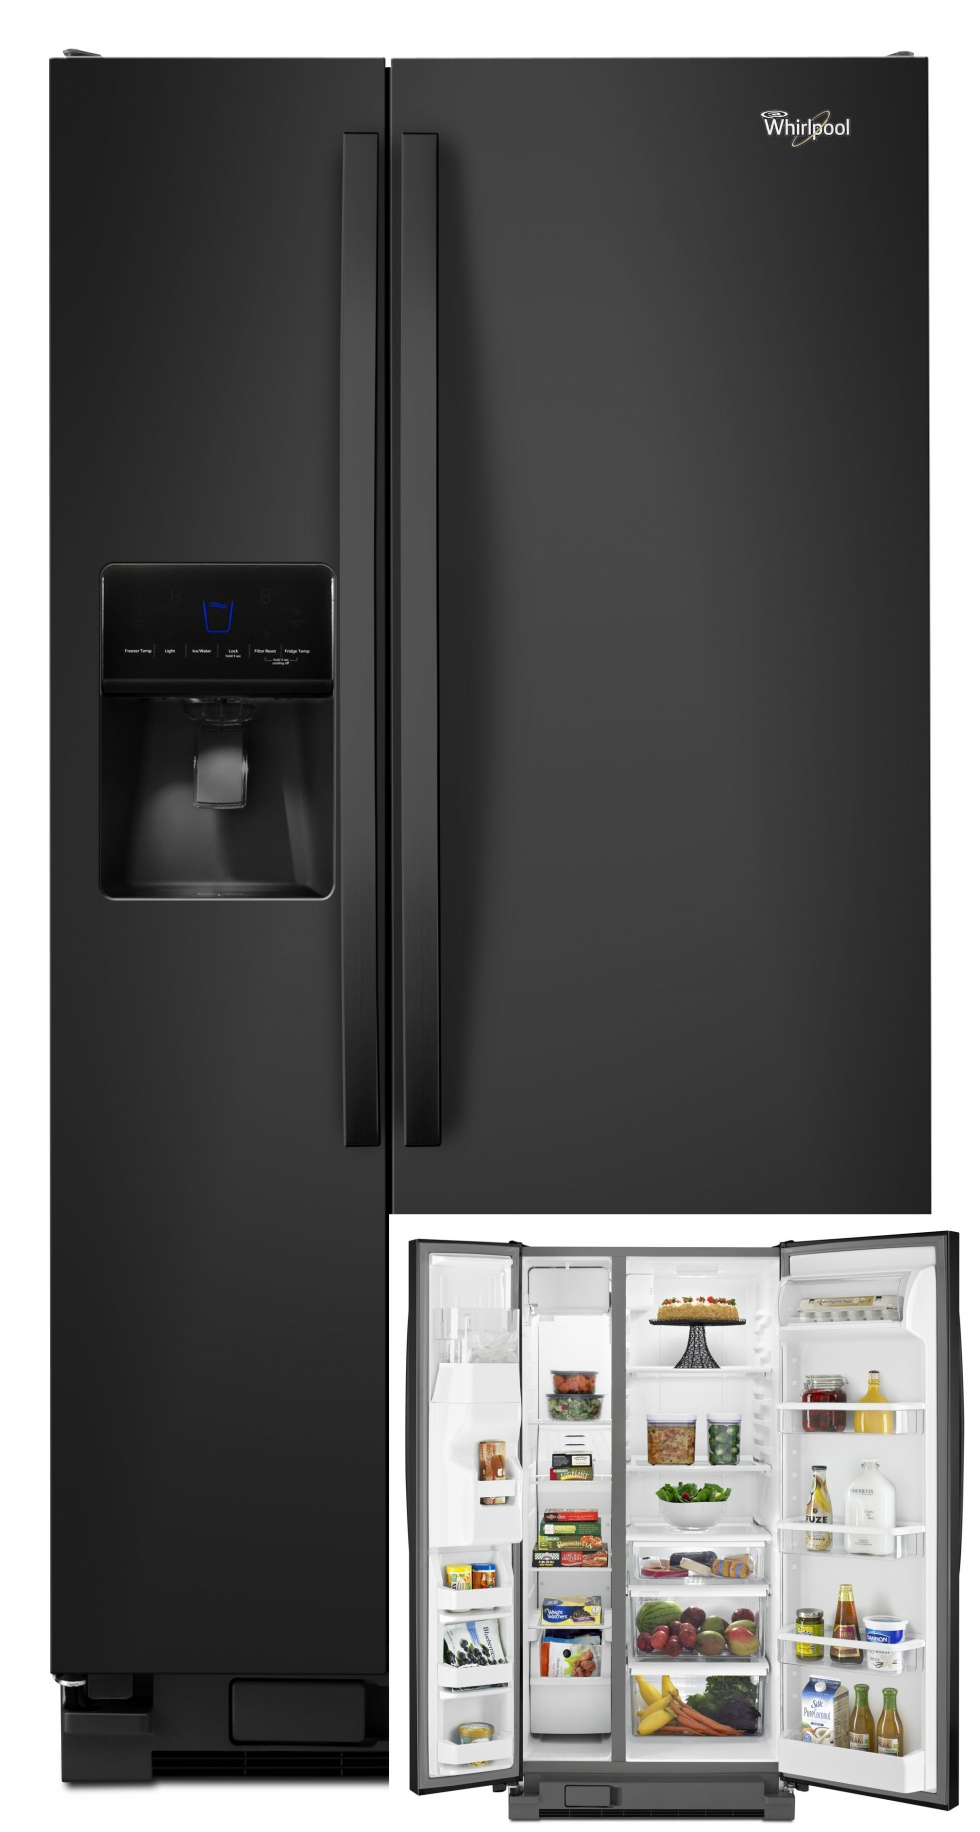 Whirlpool Side-by-Side Refrigerator Black